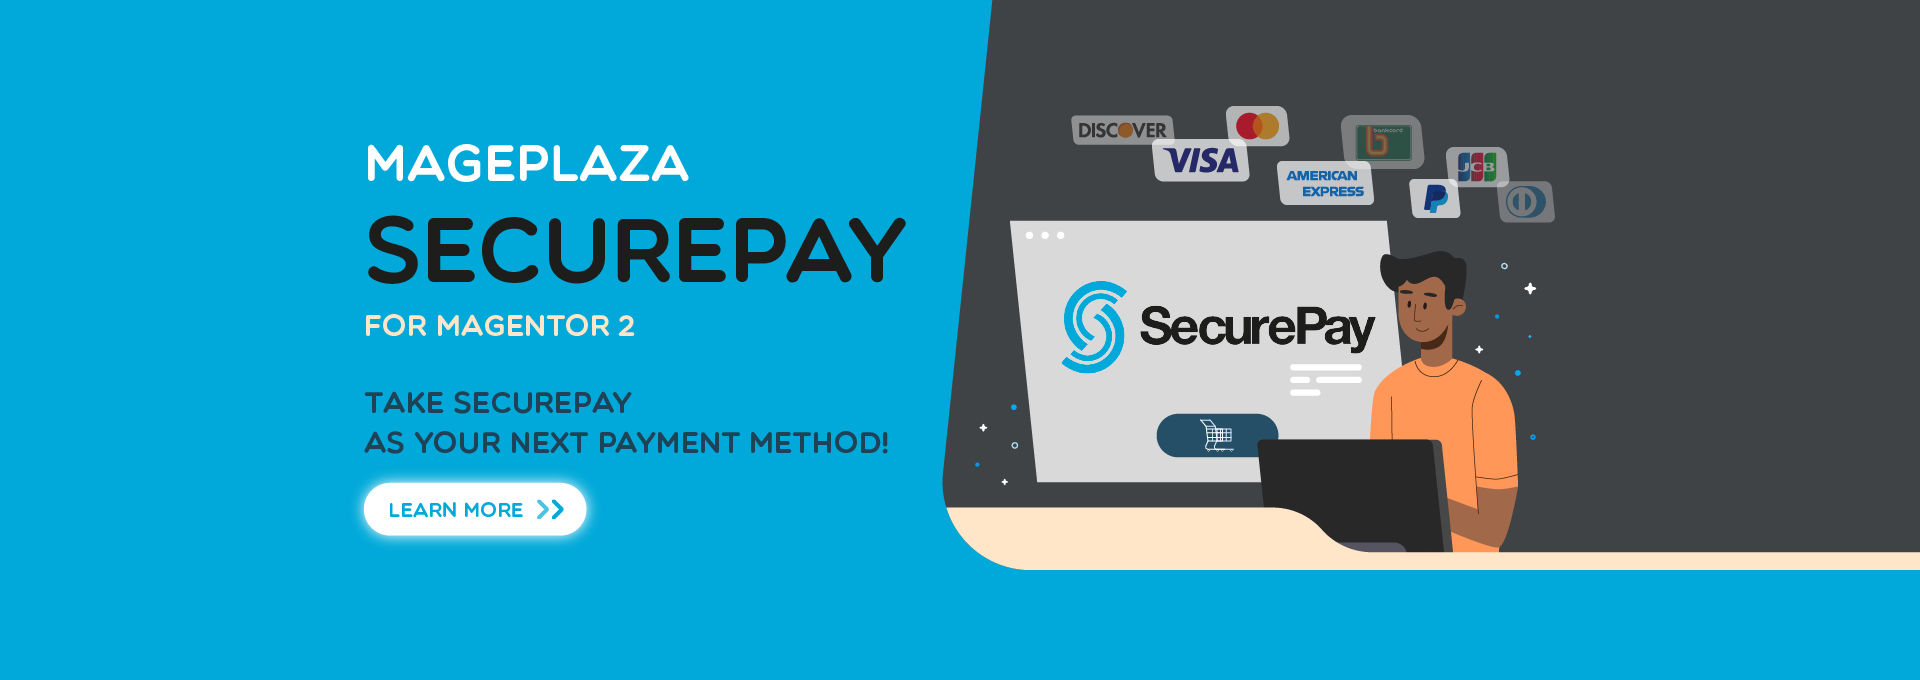 How to integrate SecurePay in Magento 2 stores